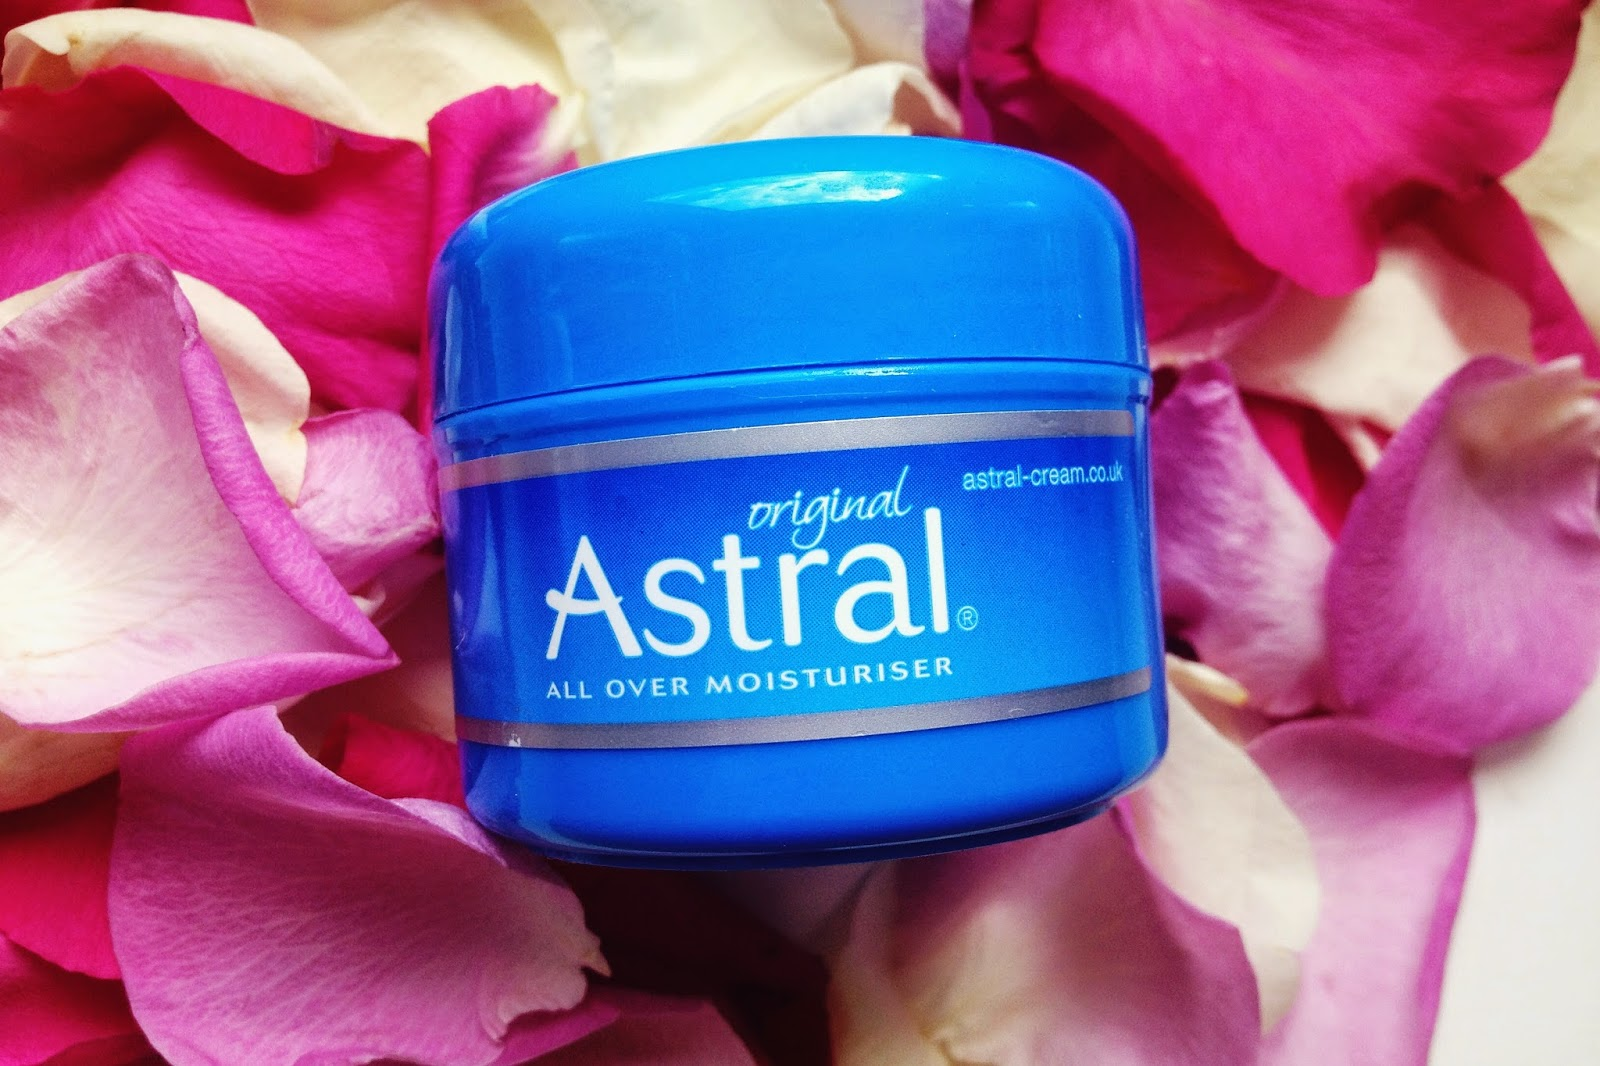 Astral cream review, beauty blog